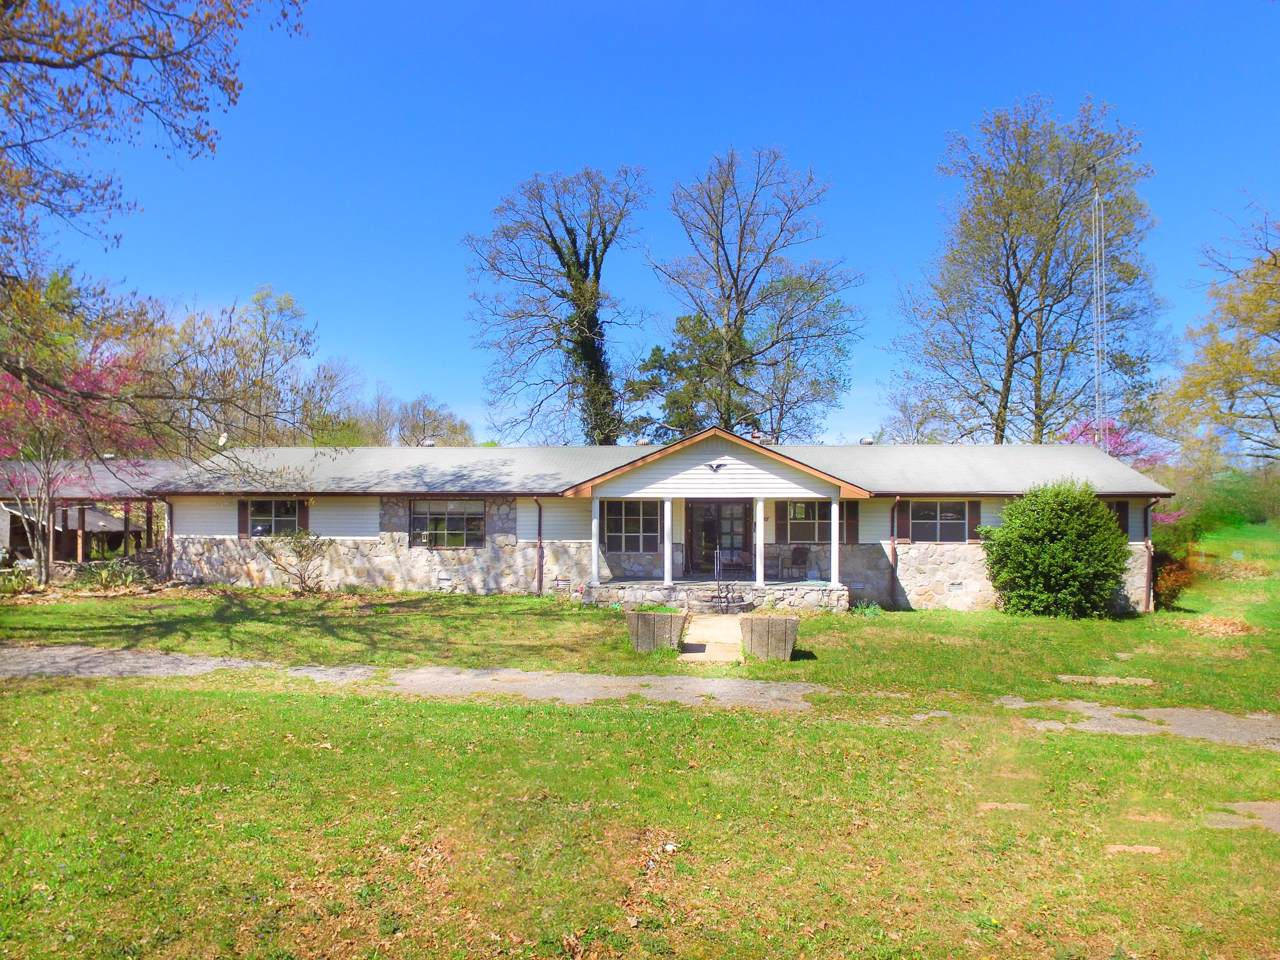 401 C Anderson Rd - Photo 1